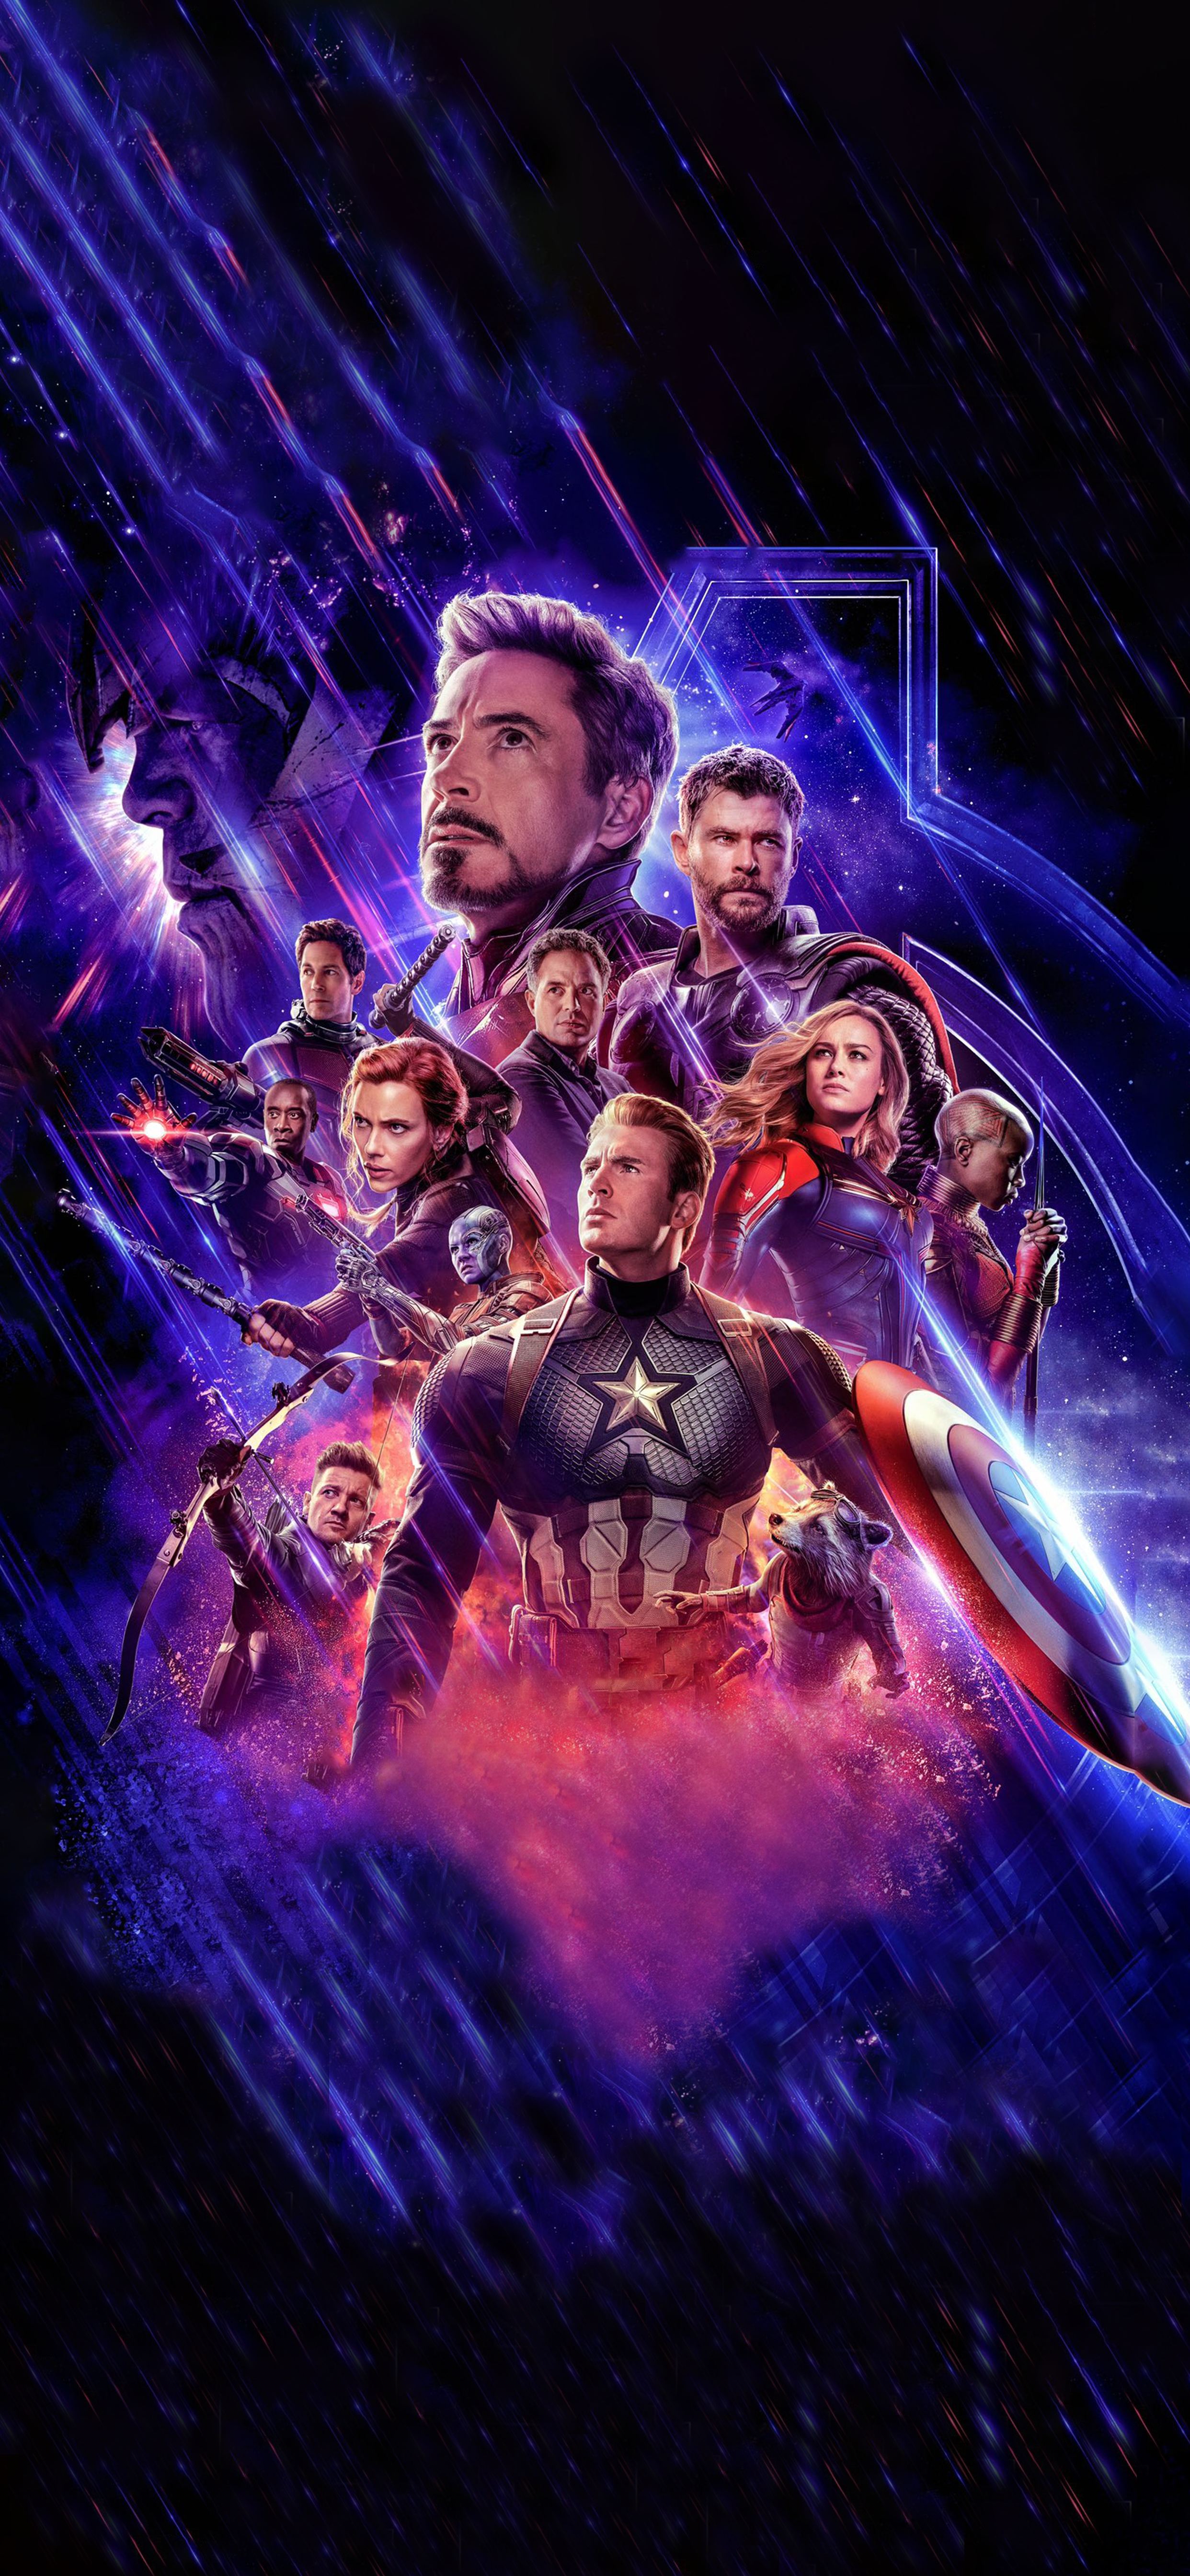 Endgame Textless Phone Wallpaper 90496 Hd Wallpaper